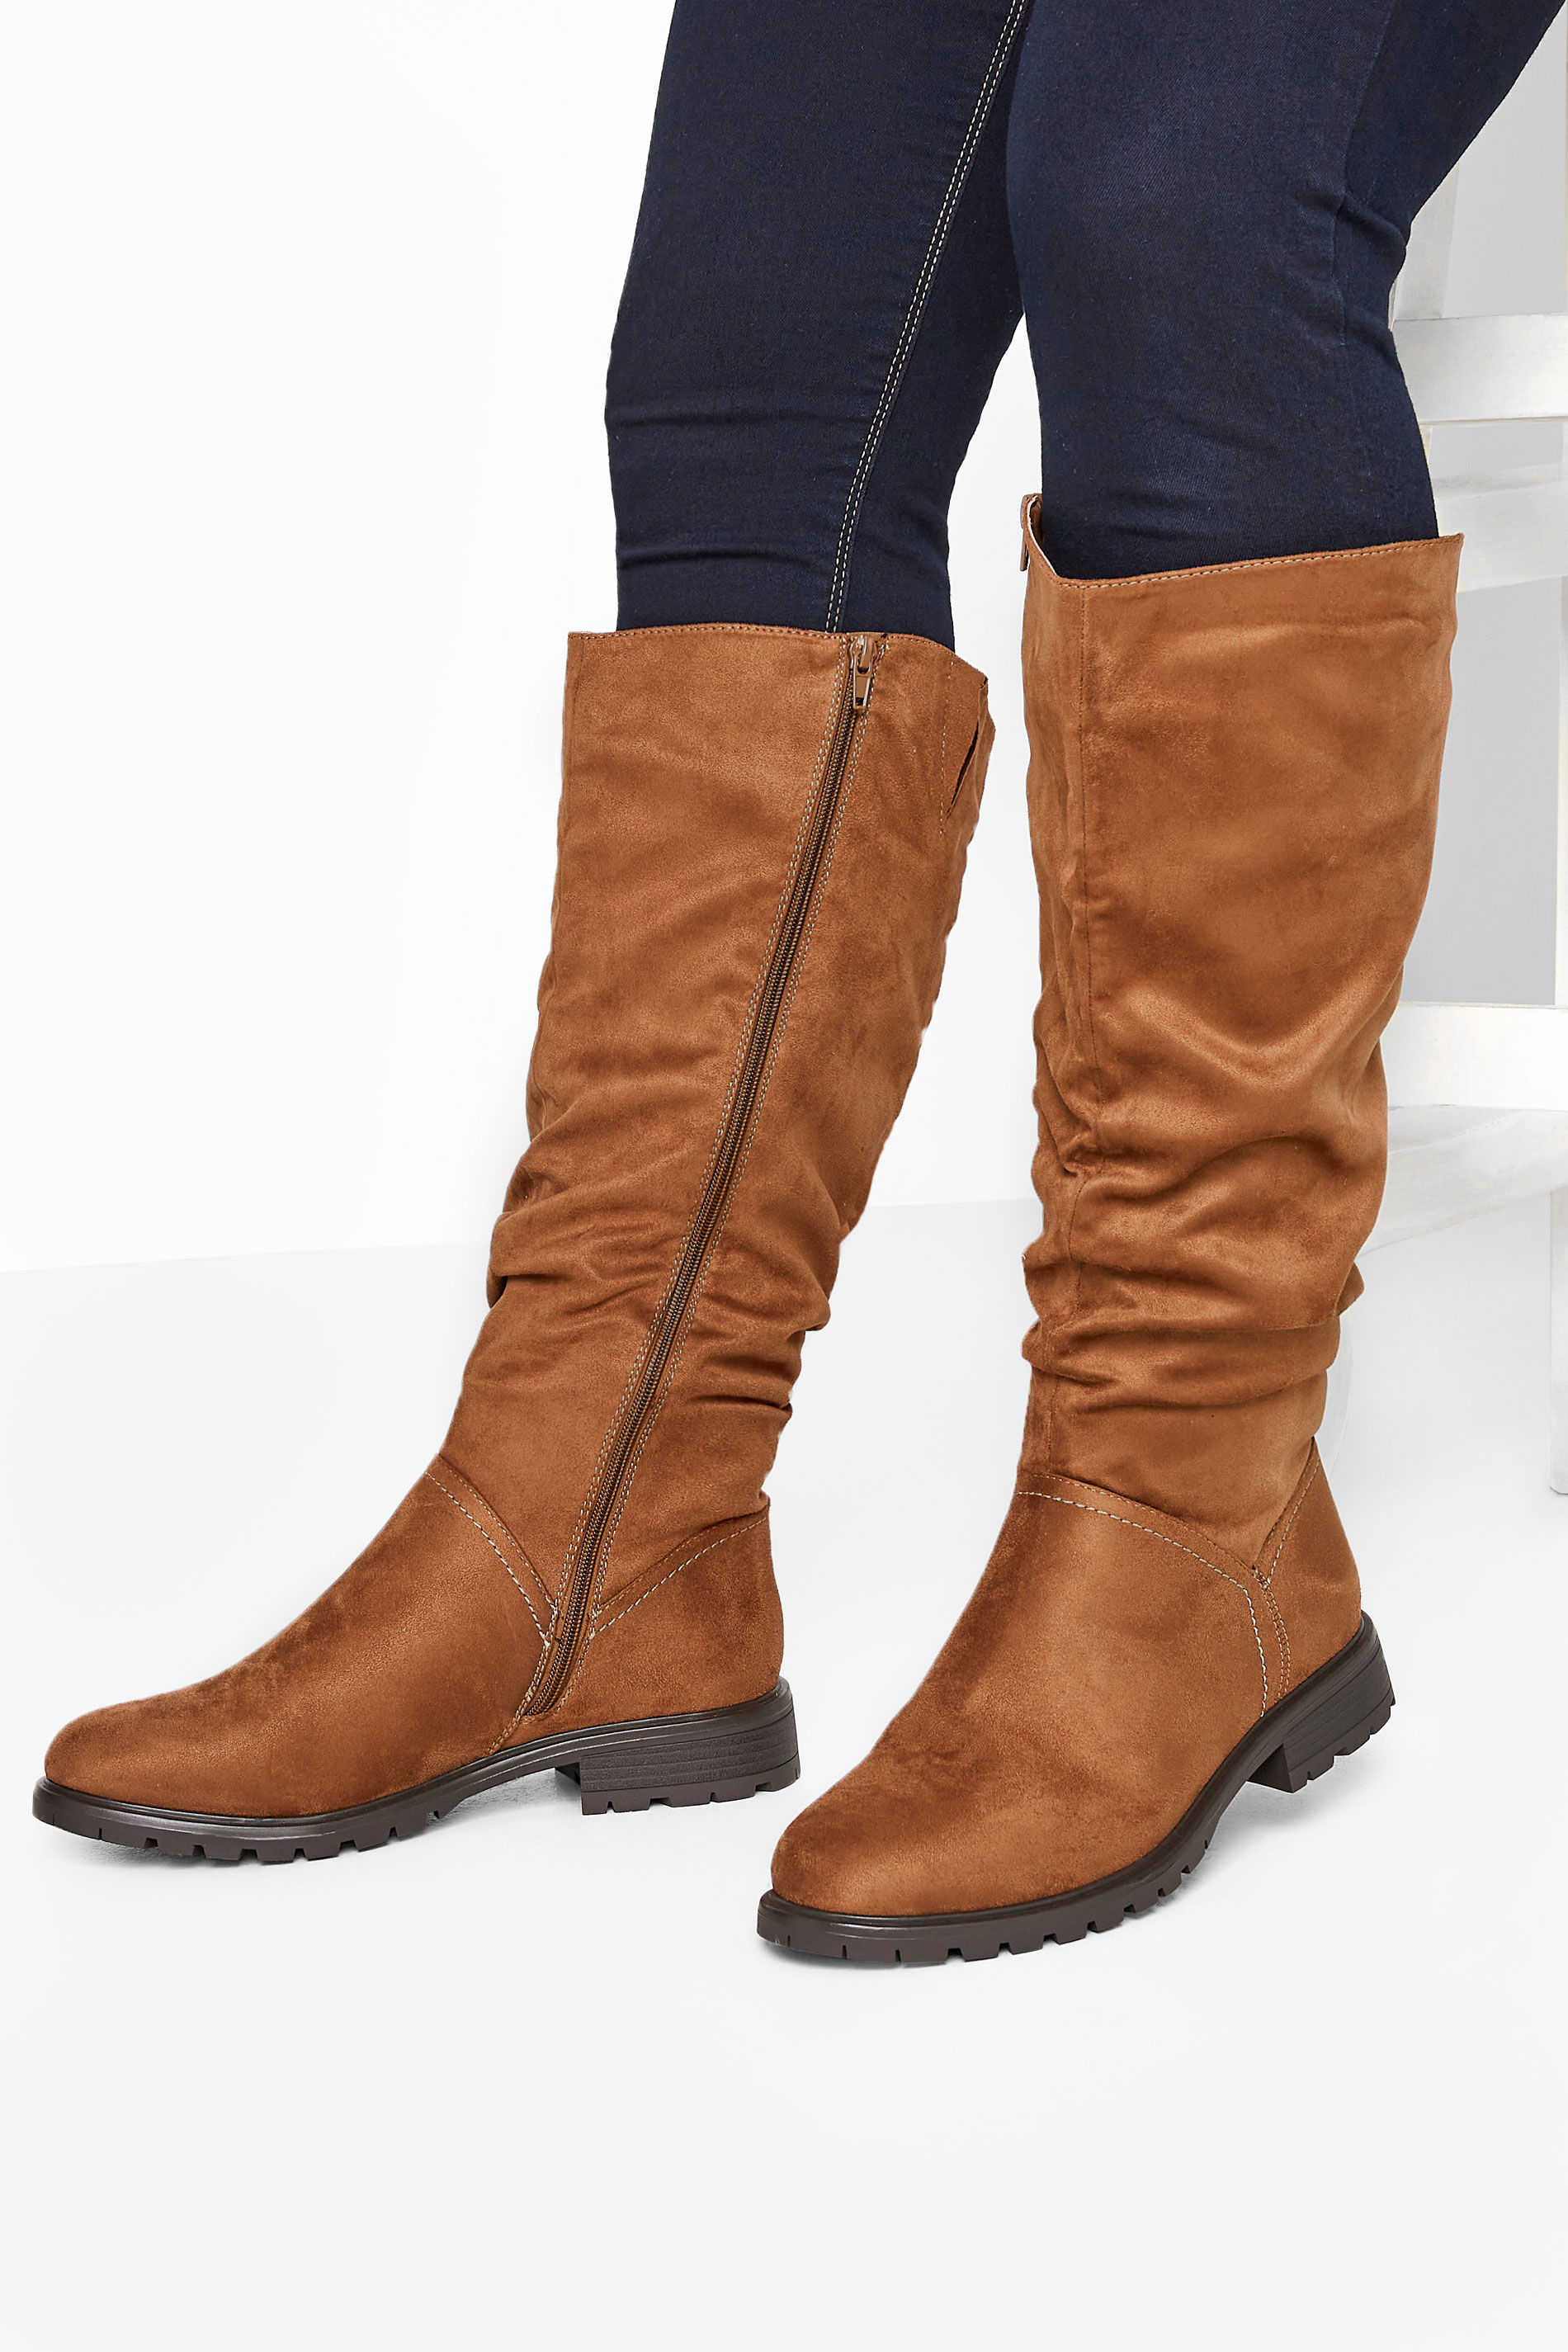 Yours Tan Suedette Ruched Knee High Boots In Extra Wide Fit